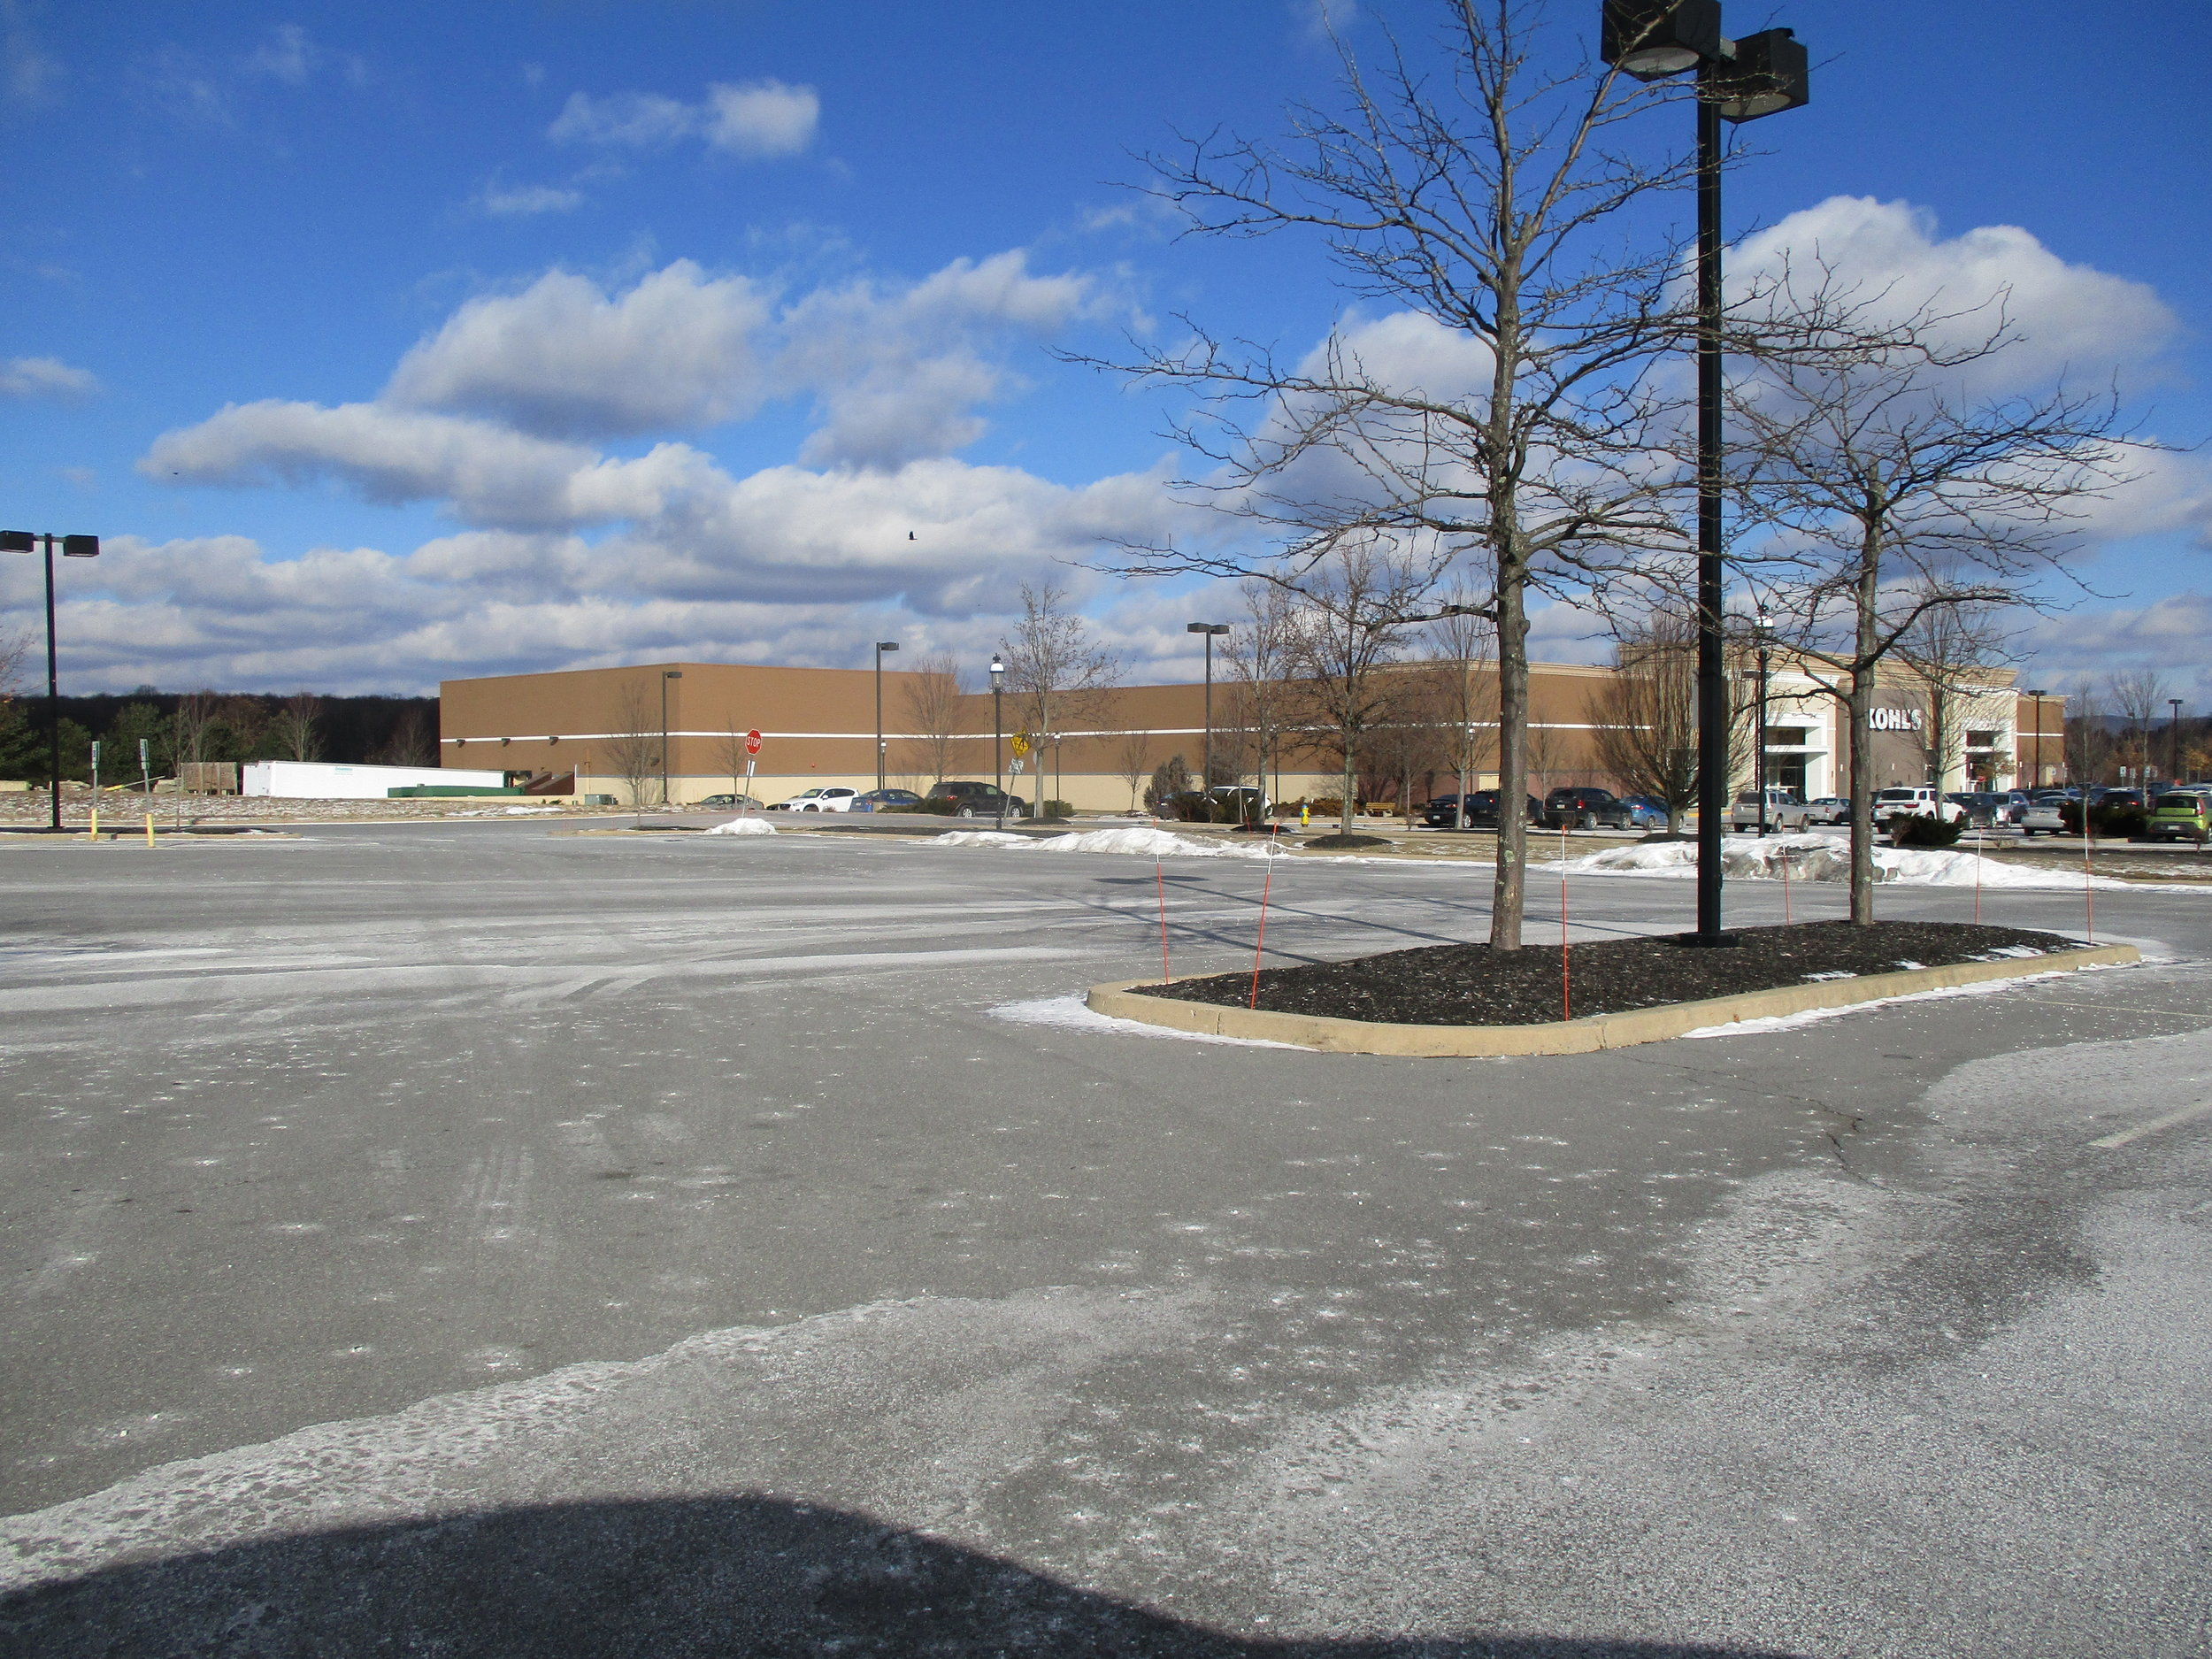 5. Empty space next to Kohl's on Theater Dr.